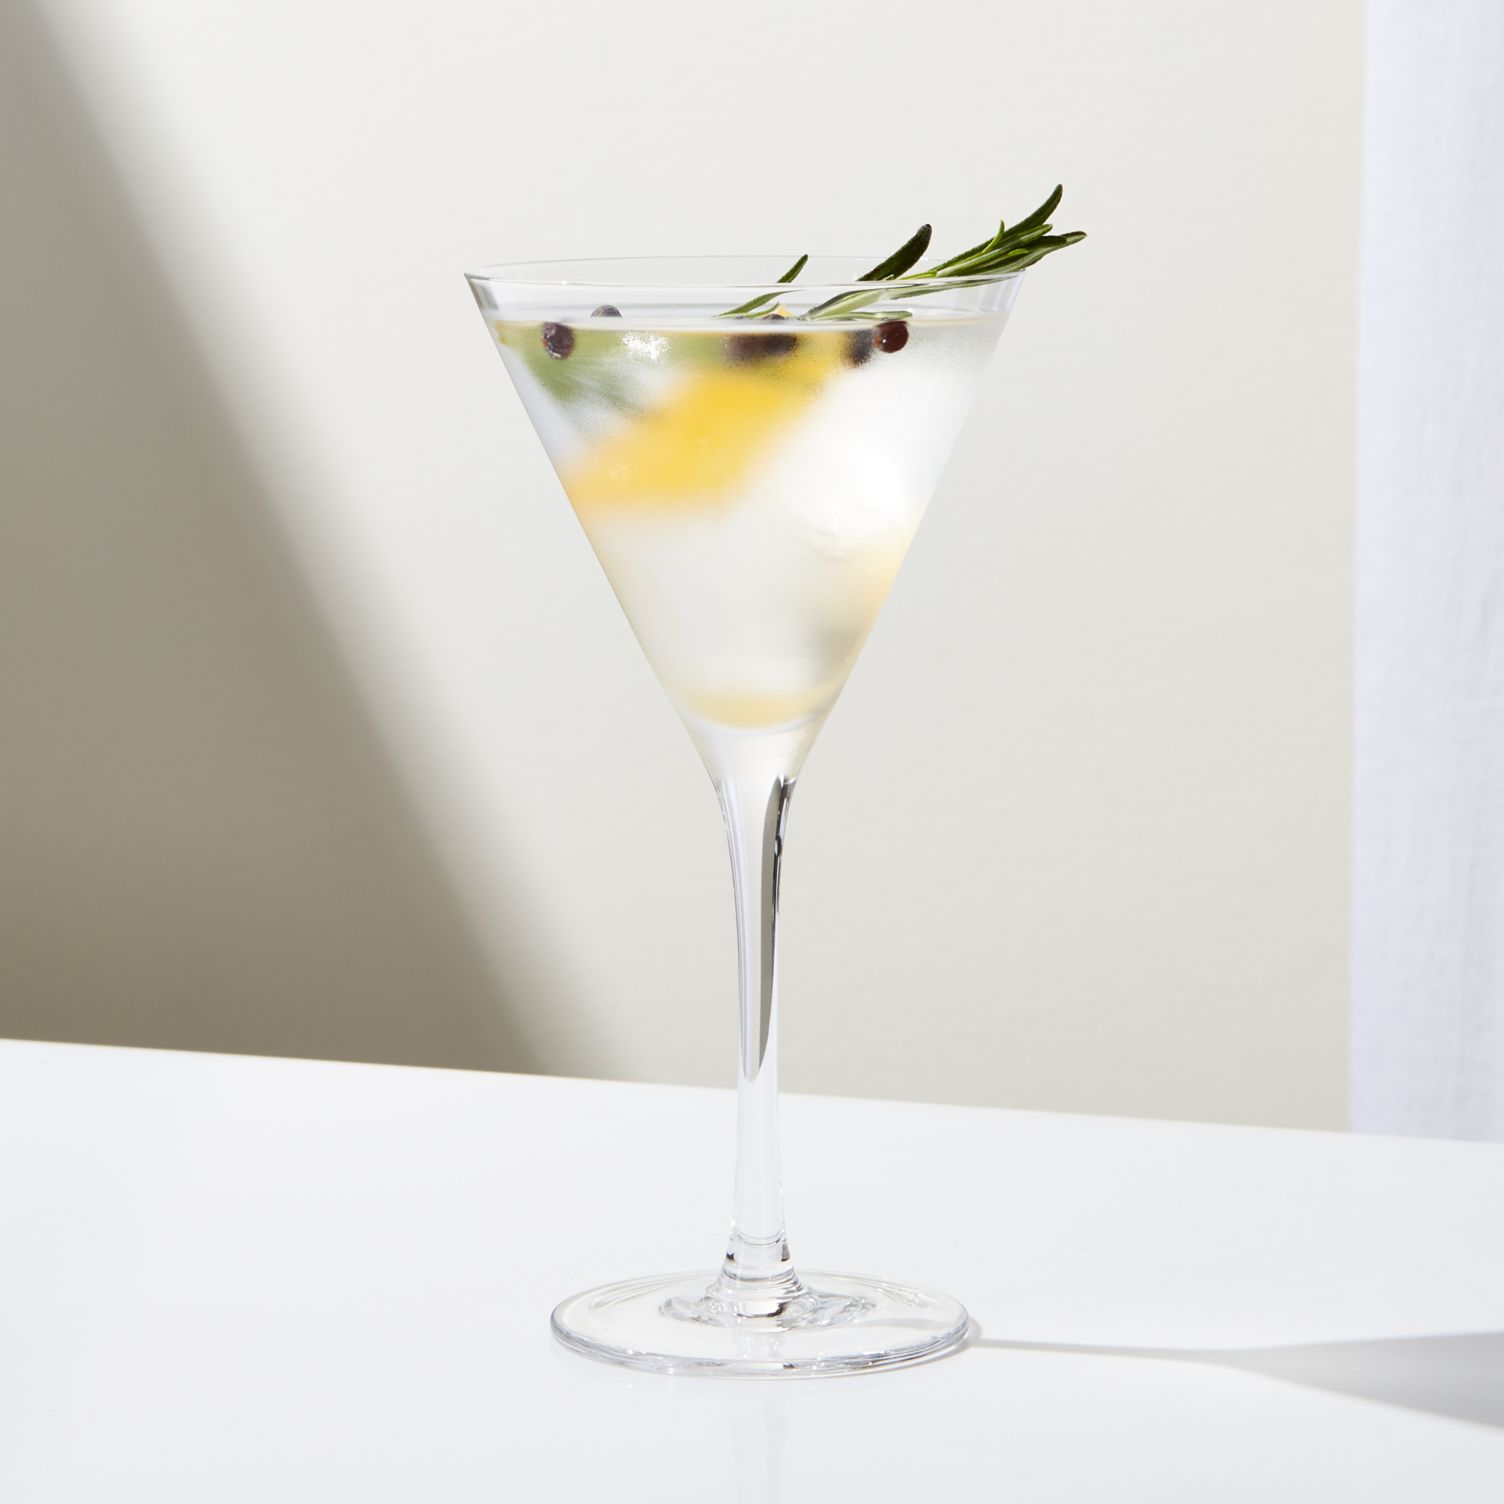 A cocktail glass filled with water, lemon, berries, and a rosemary sprig.